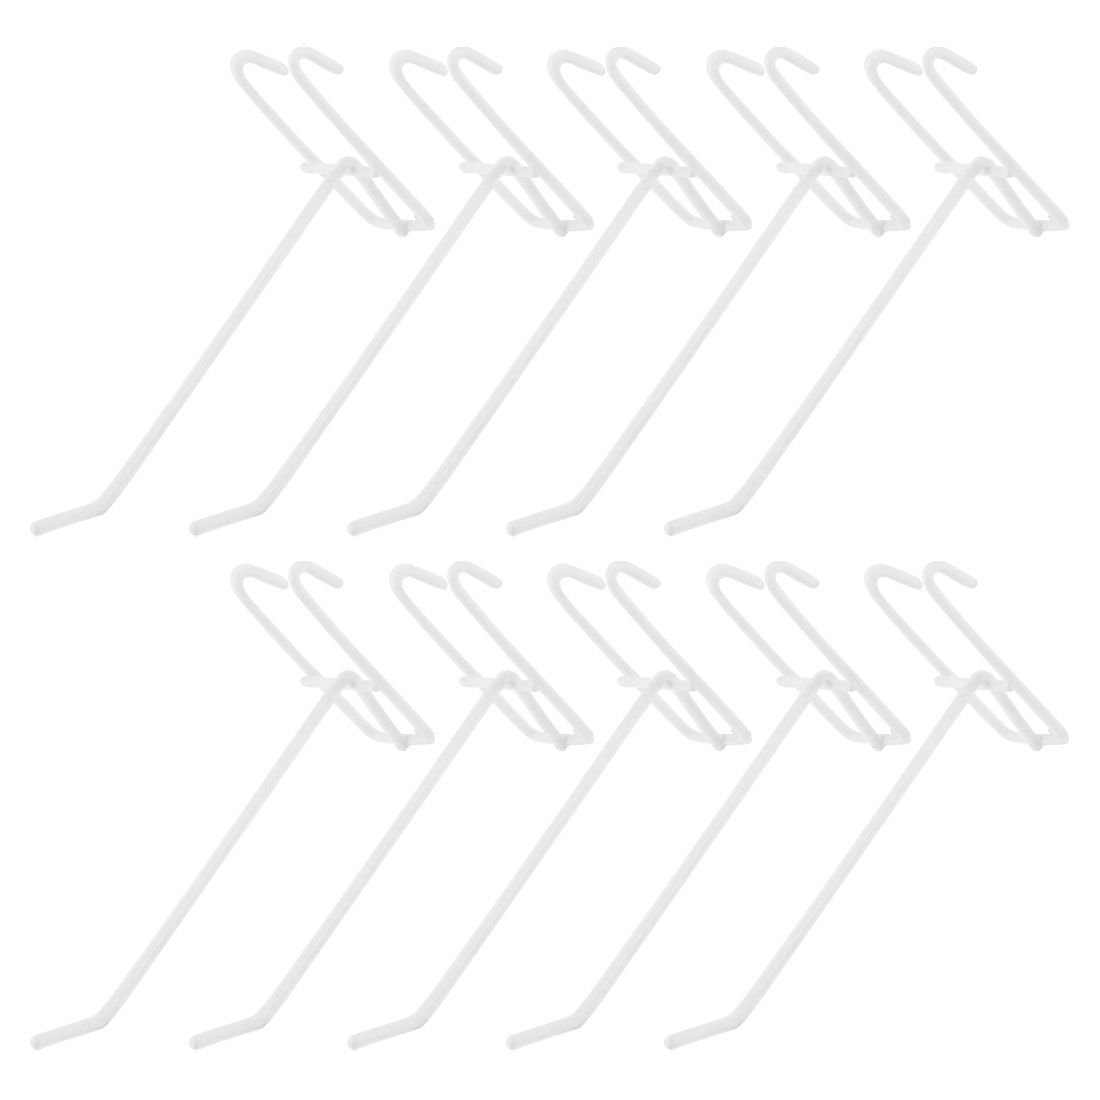 "10pcs Supermarket Store Portable Wall Bracket Display Hooks 5.7"" Long"